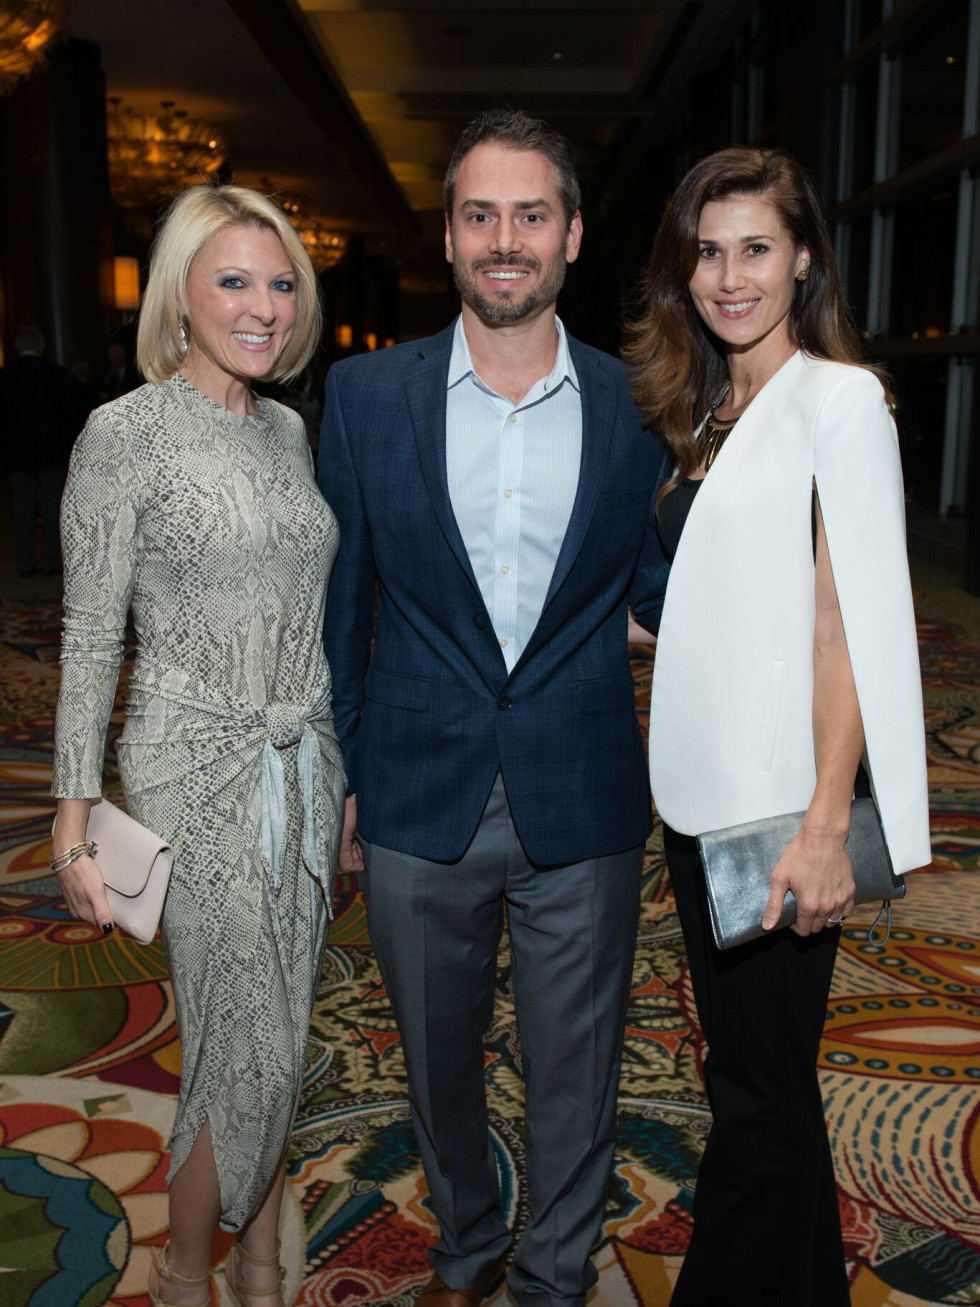 Lindsay Stewart, Craig and Karrie Yager at MD Anderson Legends dinner